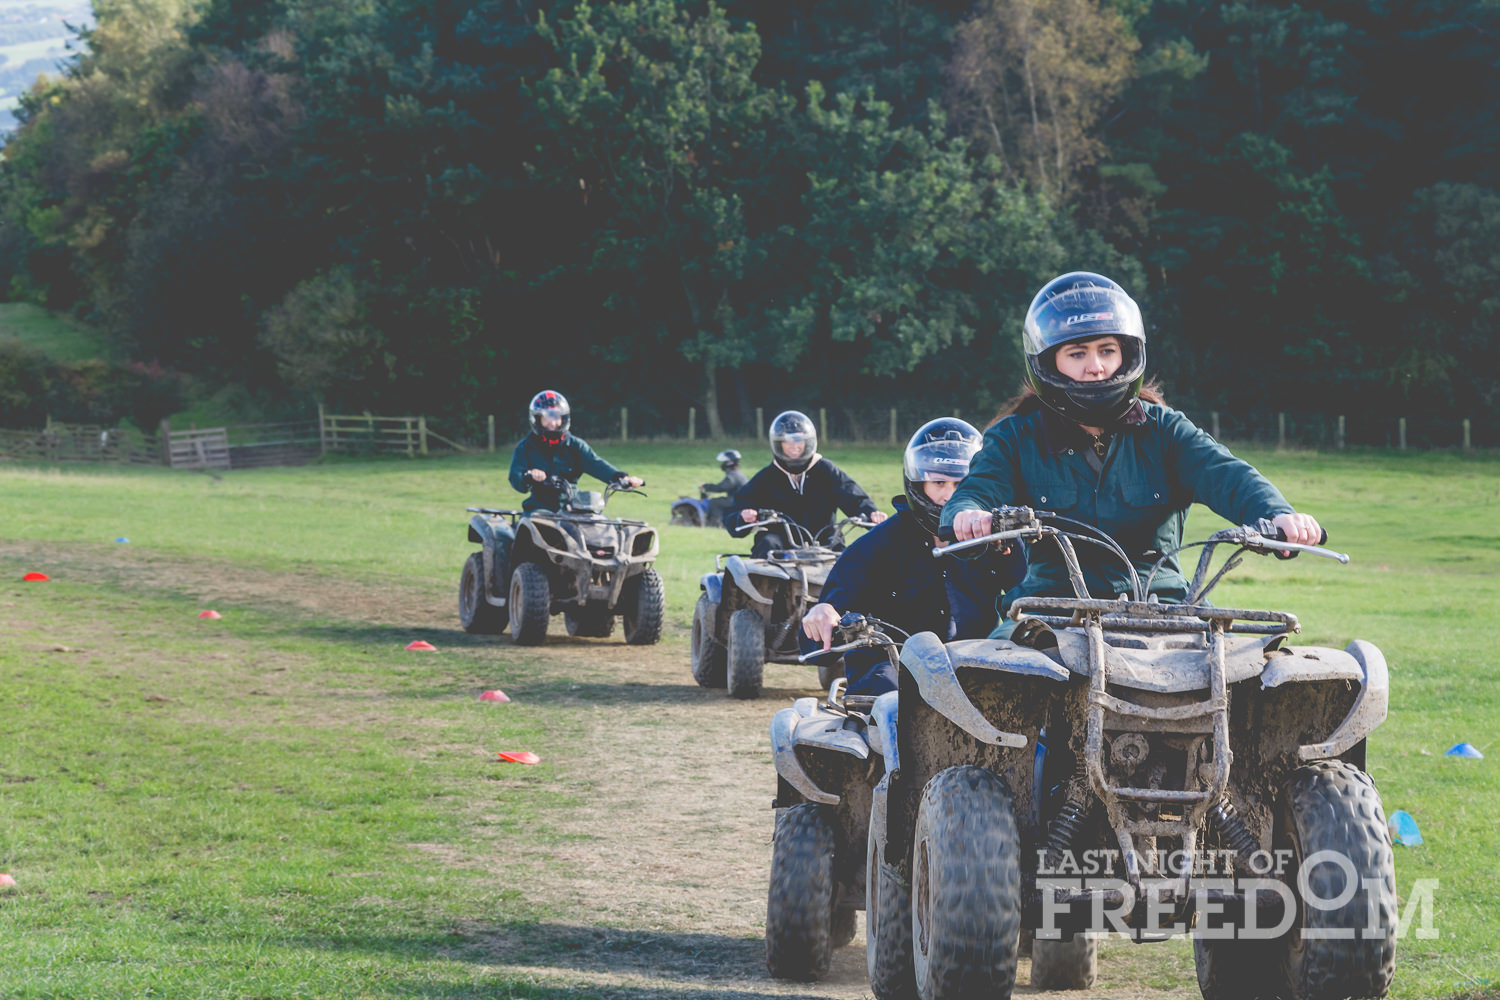 LNOF staff riding quad bikes around a track